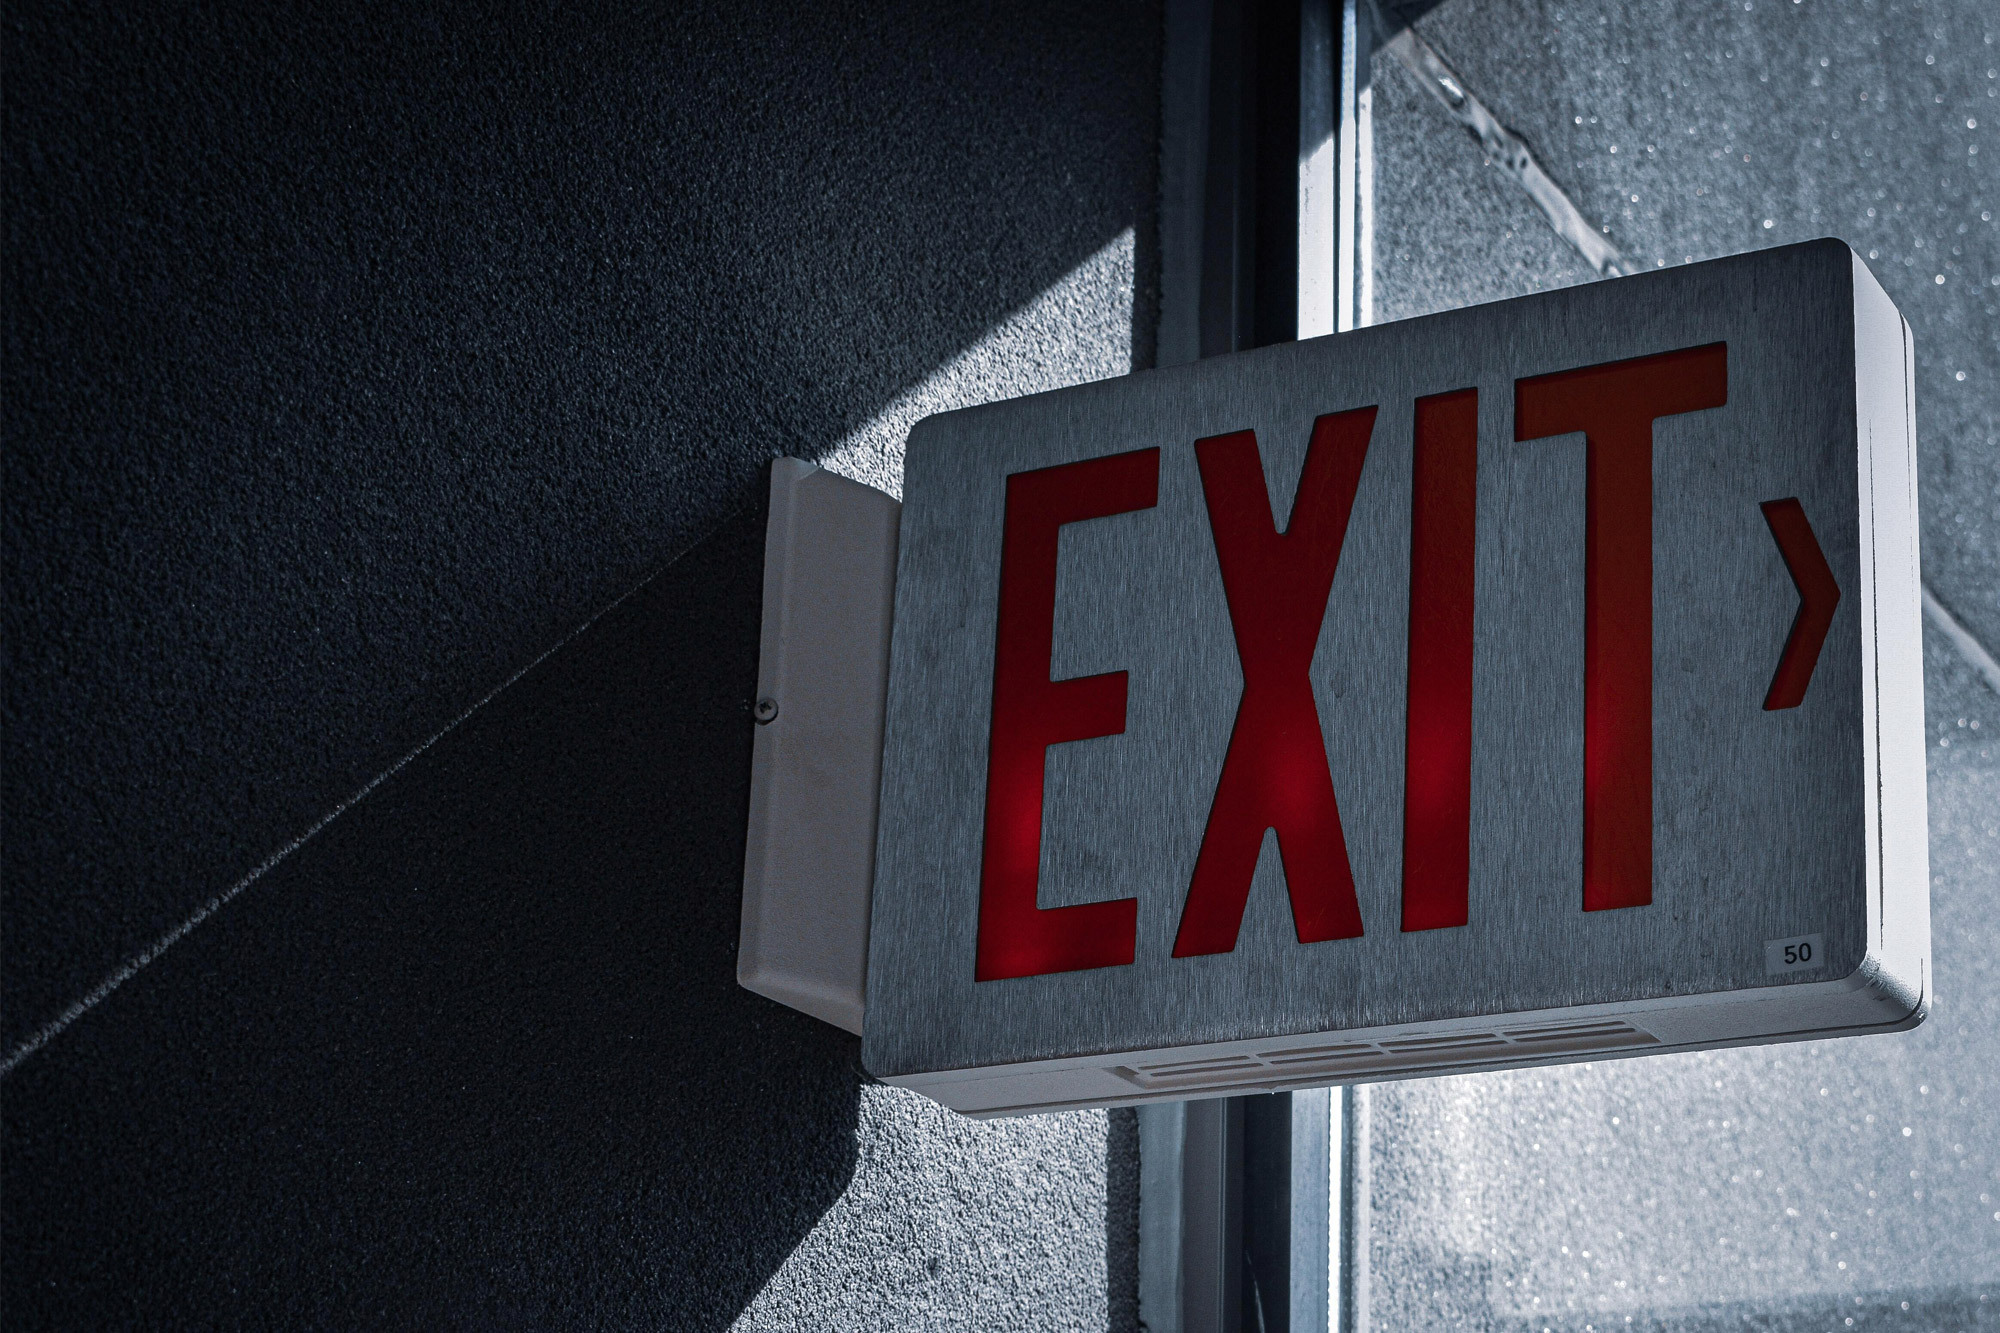 A fire evacuation plan is an essential document that ensures the safety of those in the workplace. Click to read more.